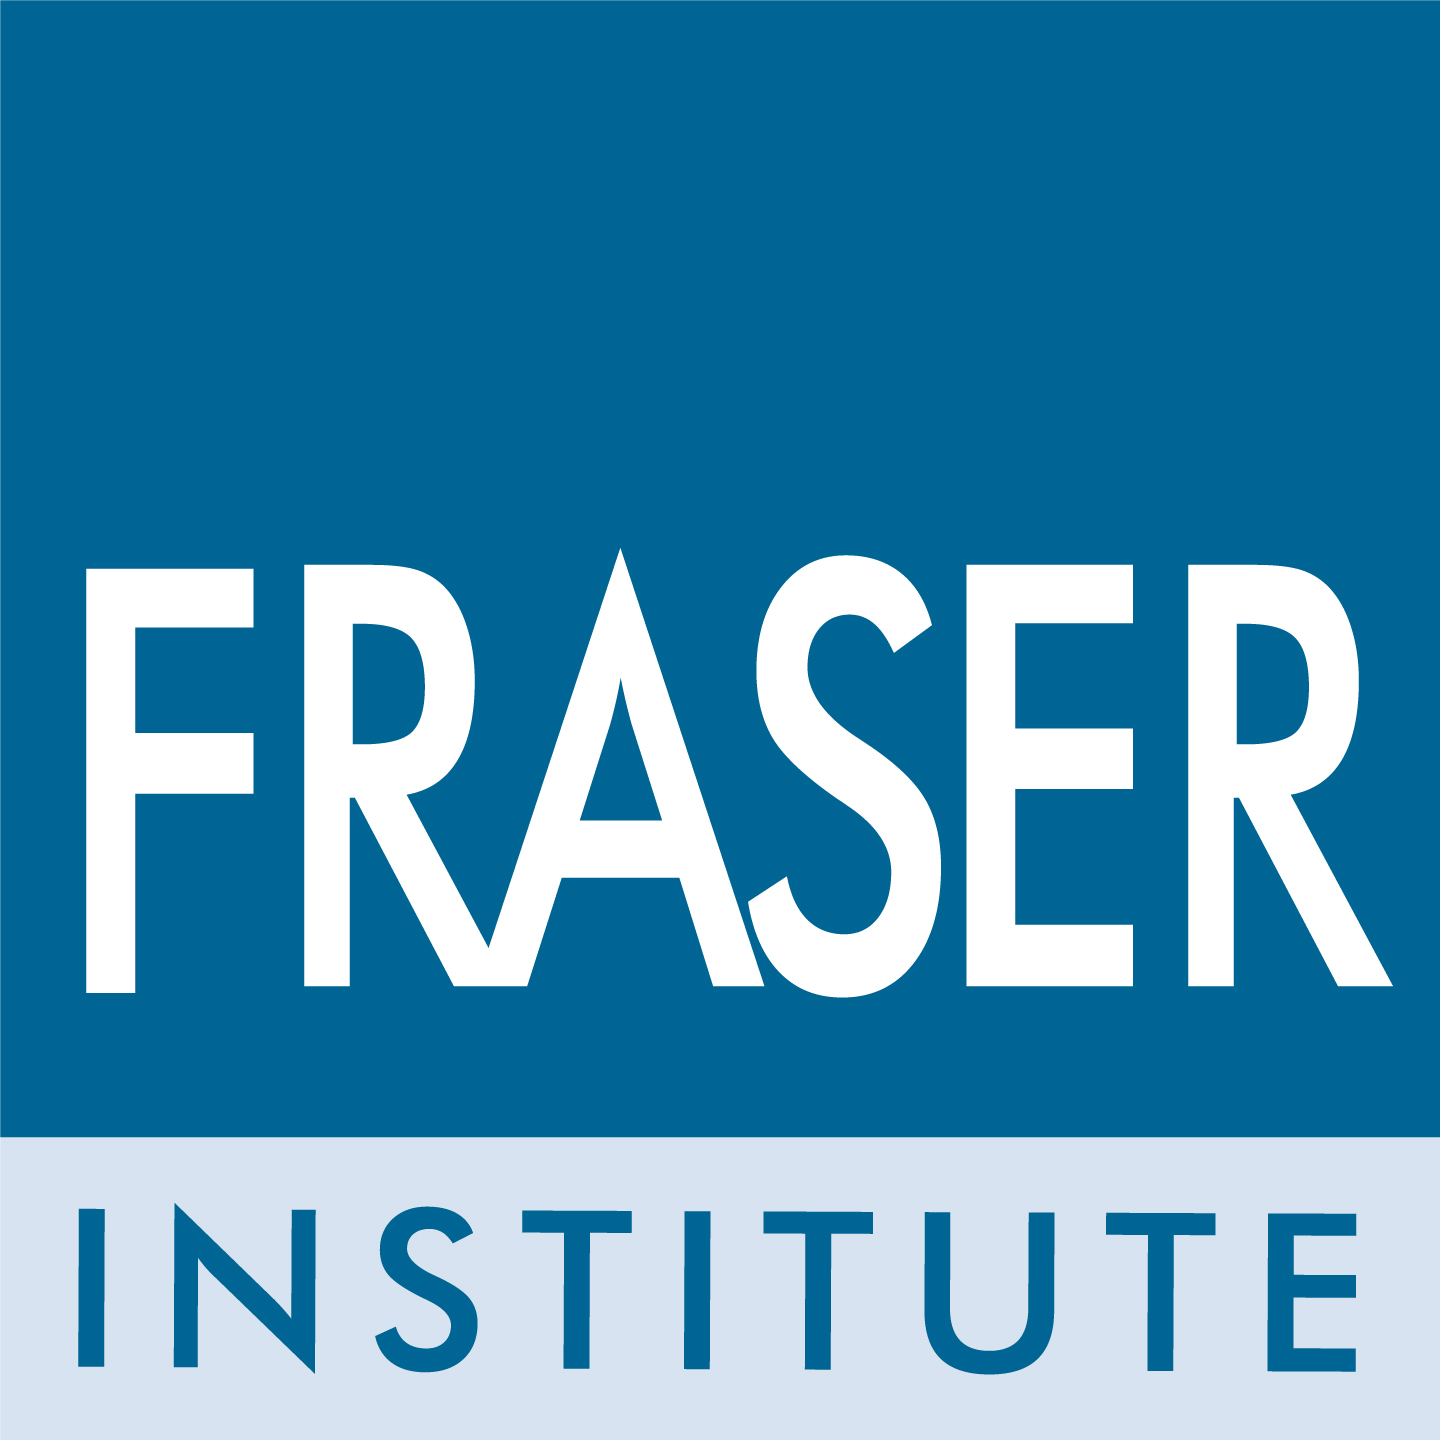 Fraser Institute Media Advisory: New essay on equalization and Alberta coming Tuesday, Jan